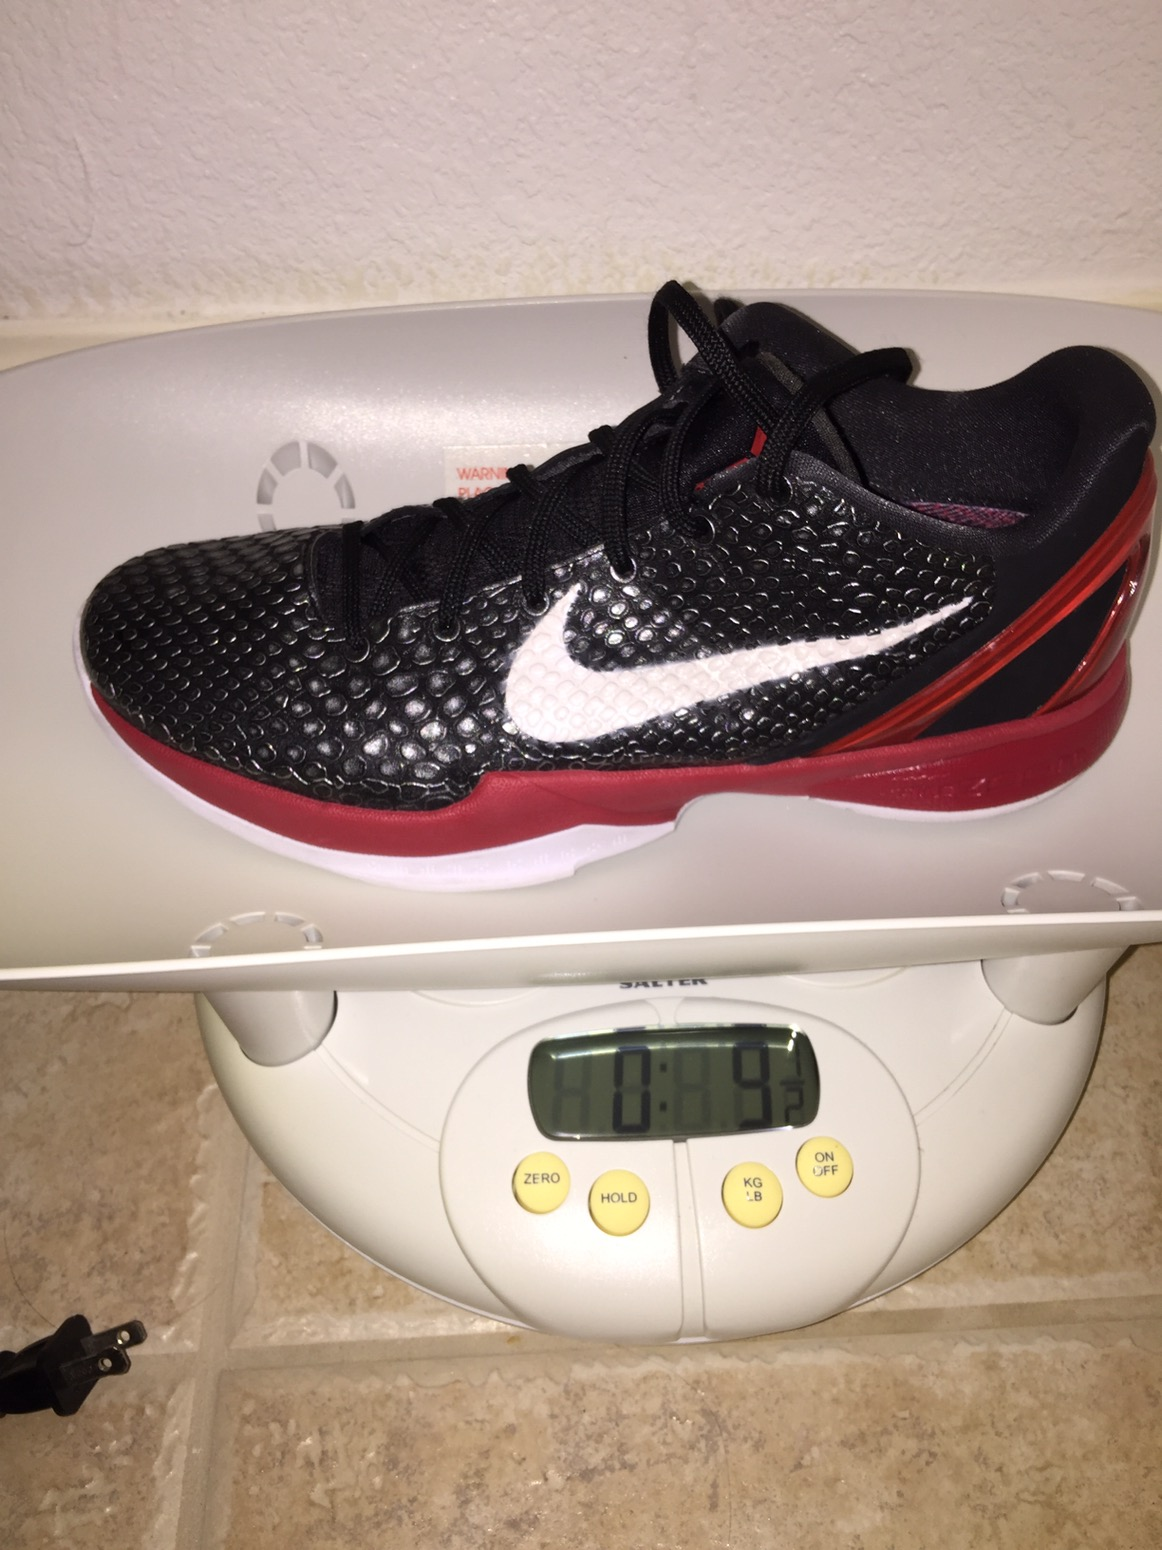 53dea1961c75 The Archive  Nike Zoom Kobe VI Performance Review and Analysis ...